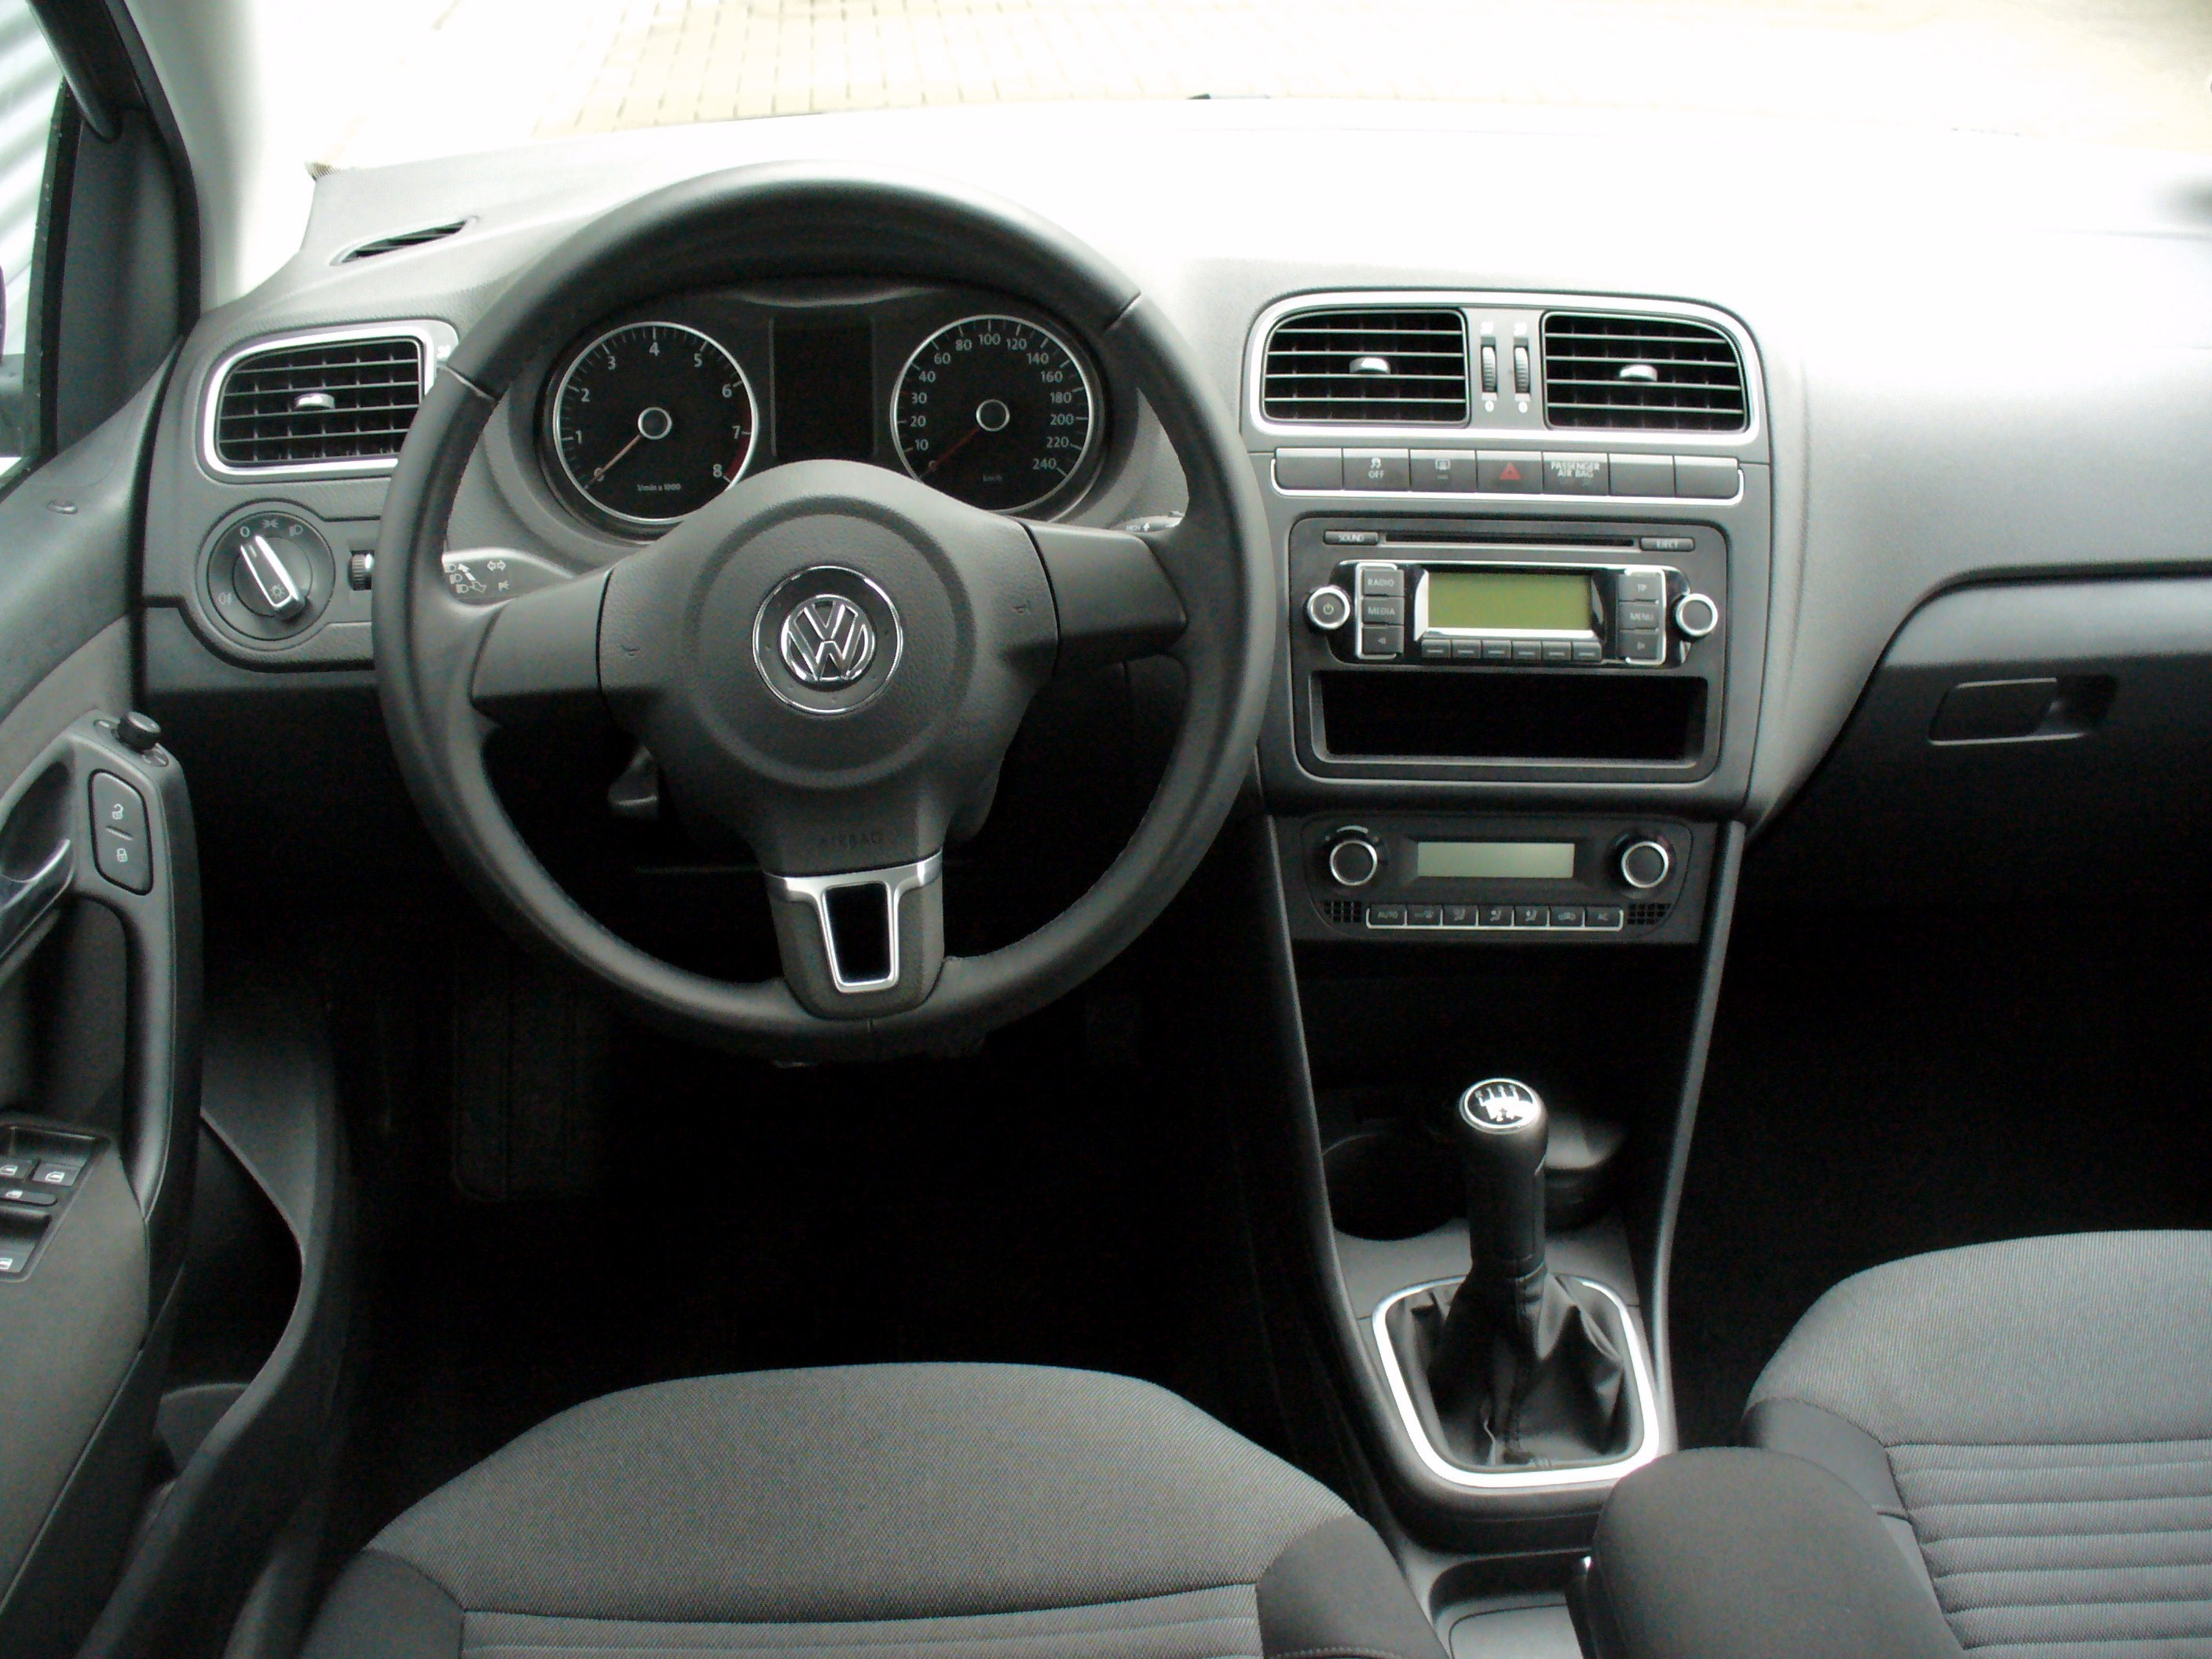 Datei:VW Polo V 1.2 Comfortline Pepper Grey Interieur.JPG – Wikipedia